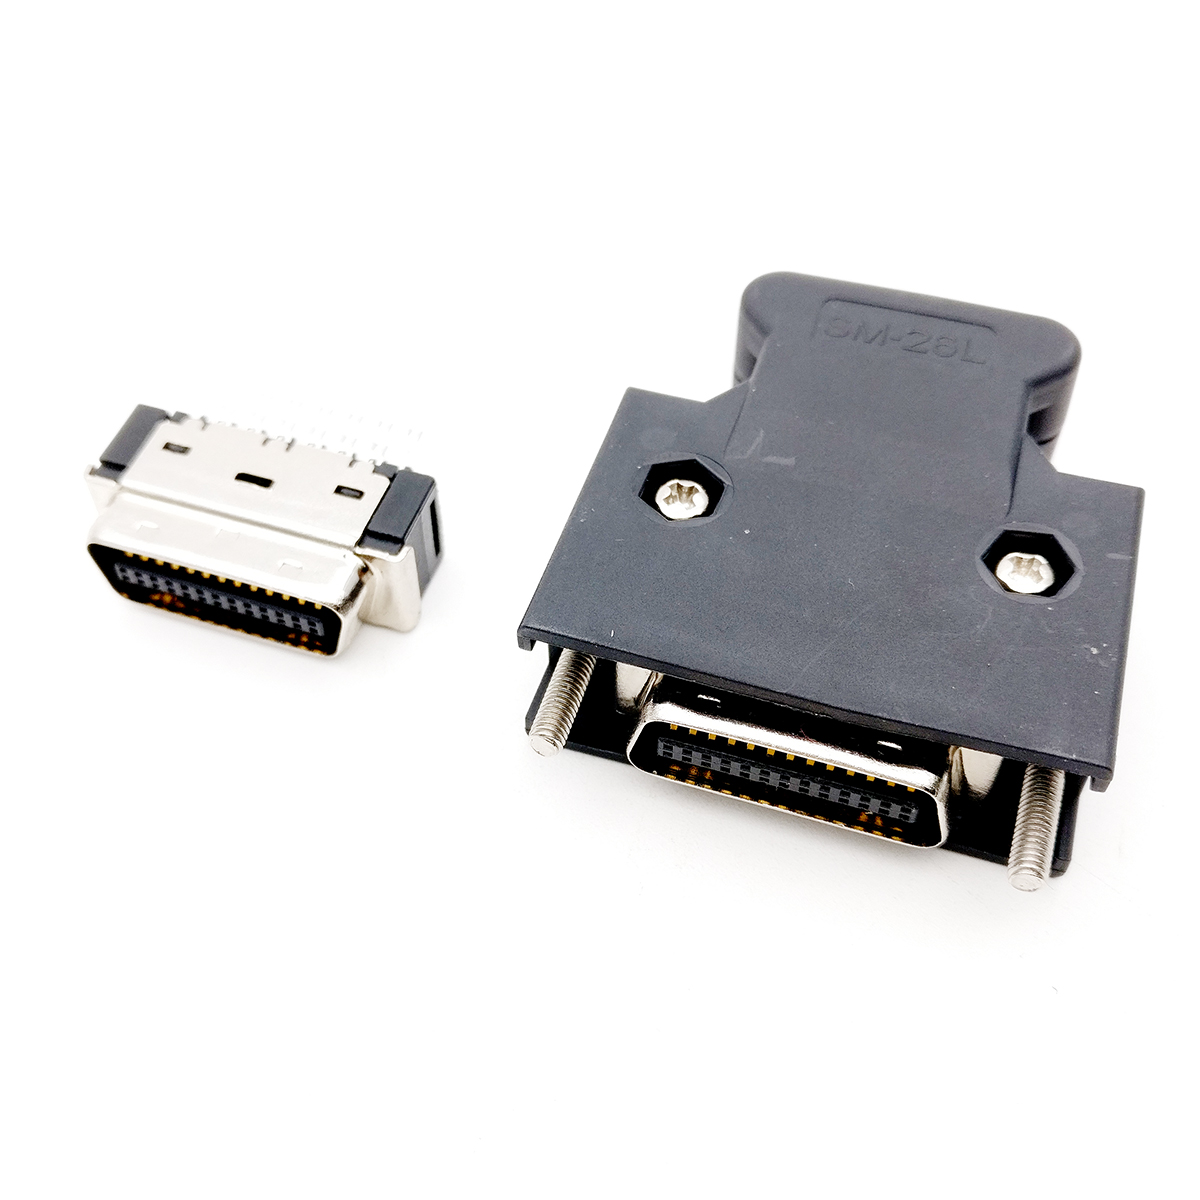 Mdr Cable Connector Male 26 Pin Compatible With 3m Scsi Cn To Rj45 Wiring Diagram 10326 10126 In Connectors From Lights Lighting On Alibaba Group